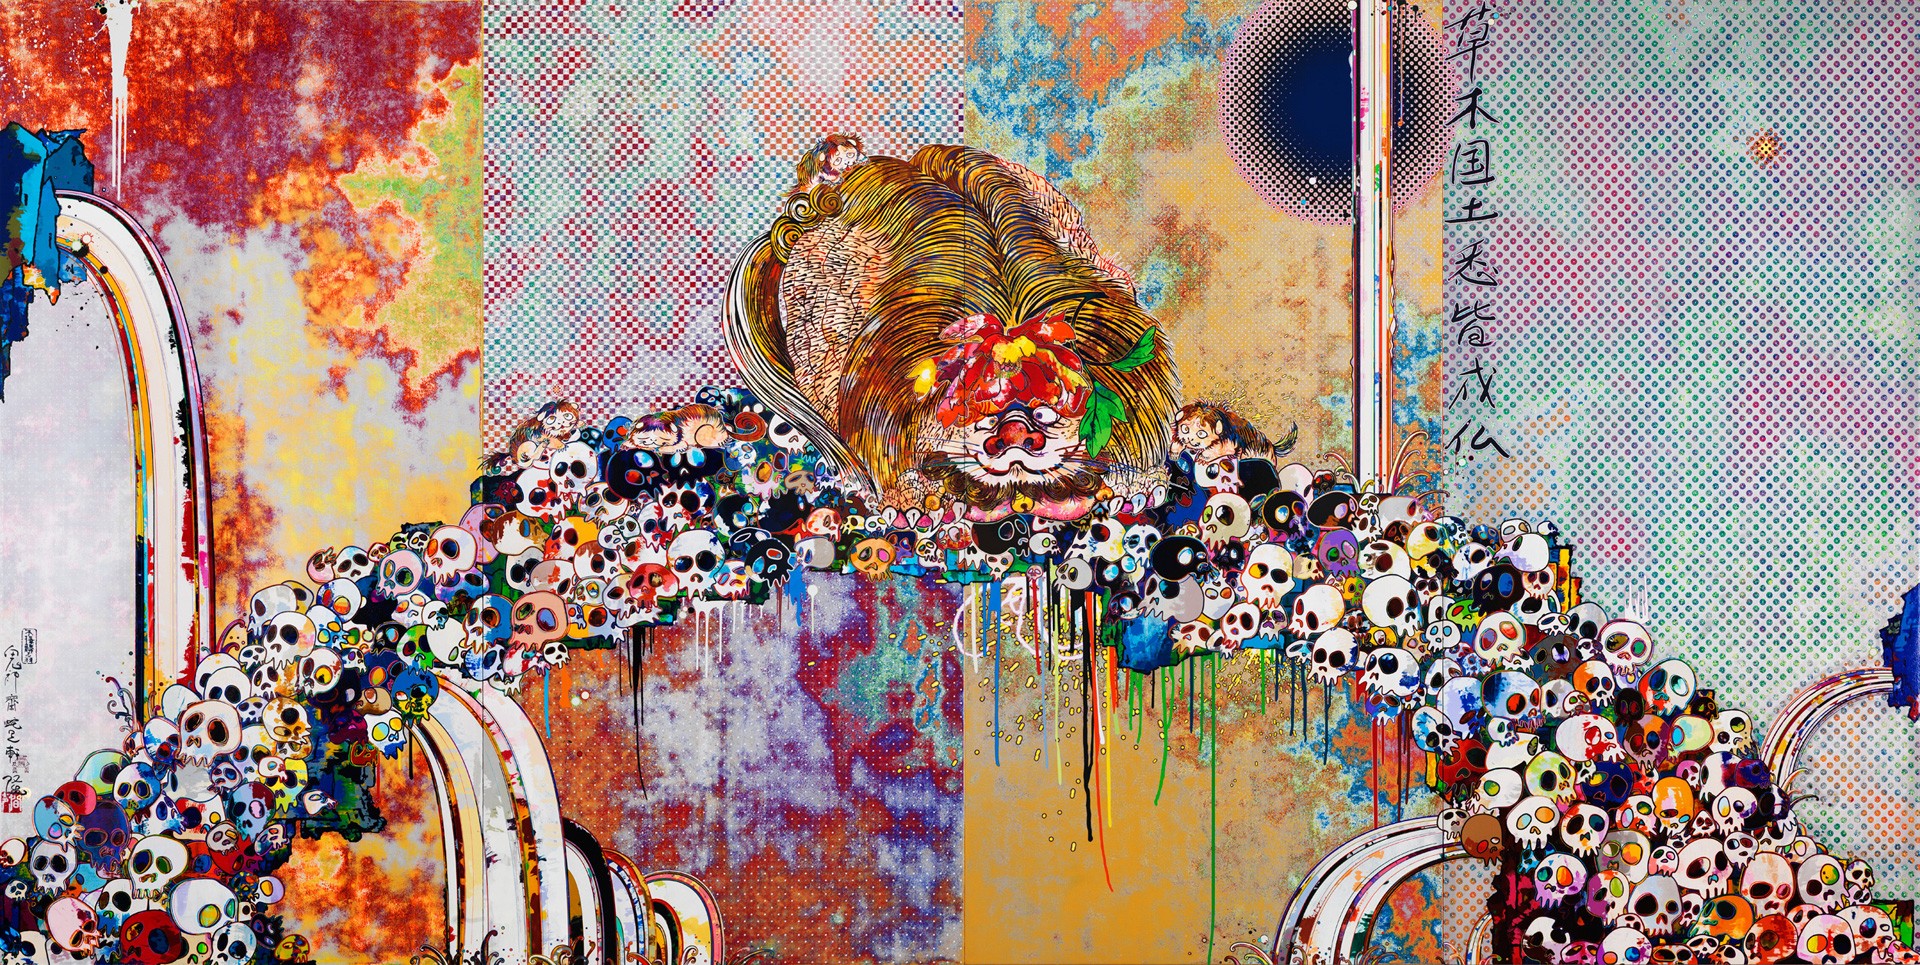 Takashi Murakami - Of Chinese Lions, Peonies, Skulls, And Fountains, 2011, acrylic on canvas stretched on wooden panel